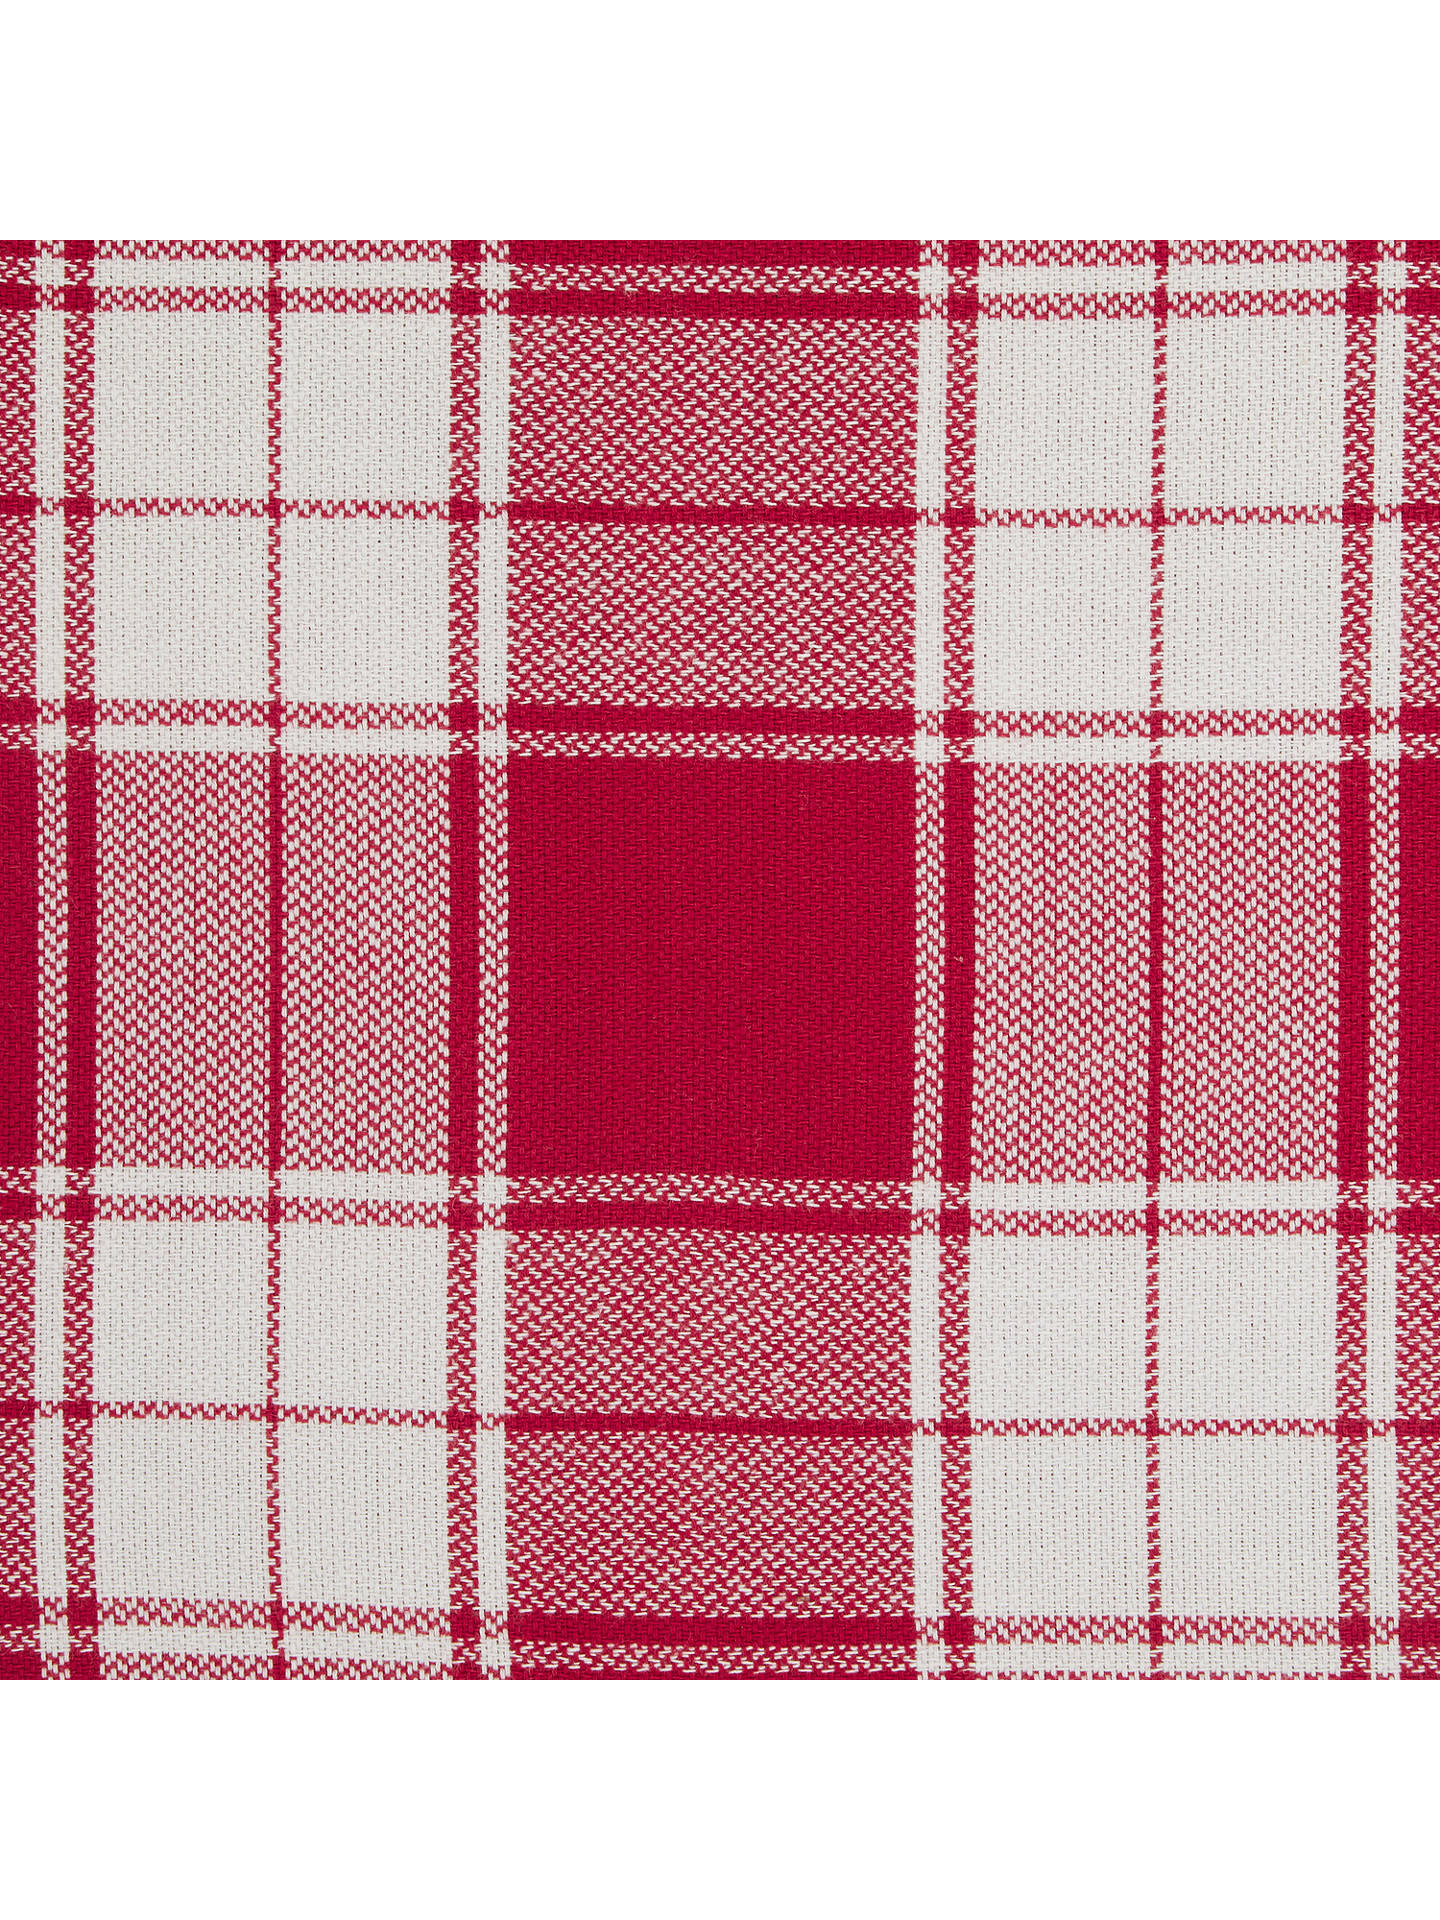 Buy John Lewis & Partners Check Tablecloth, Red, 250 x 160cm Online at johnlewis.com